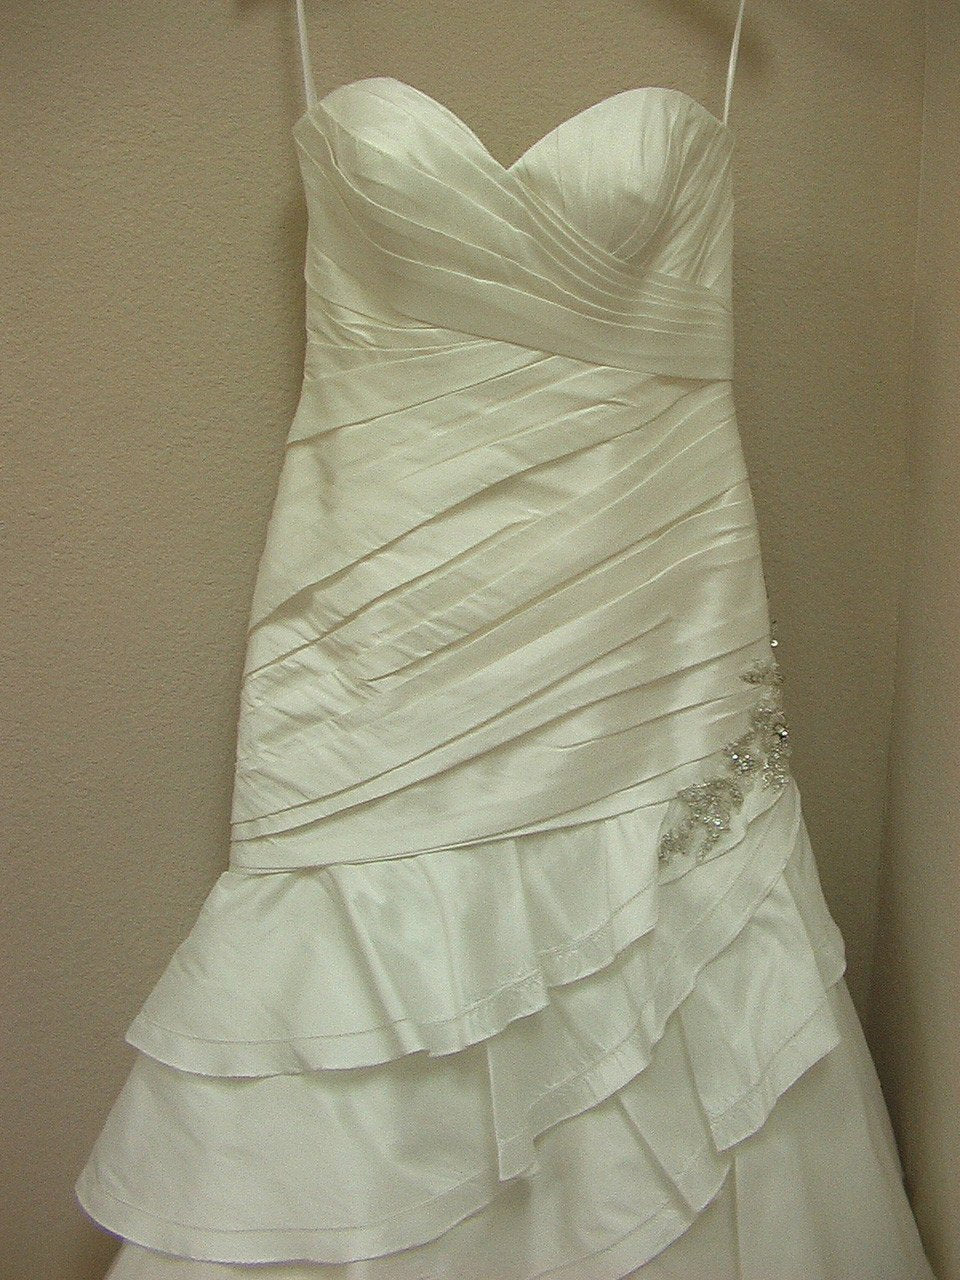 Allure 2451 Ivory/Silver size 12 In Stock Wedding Dress - Tom's Bridal